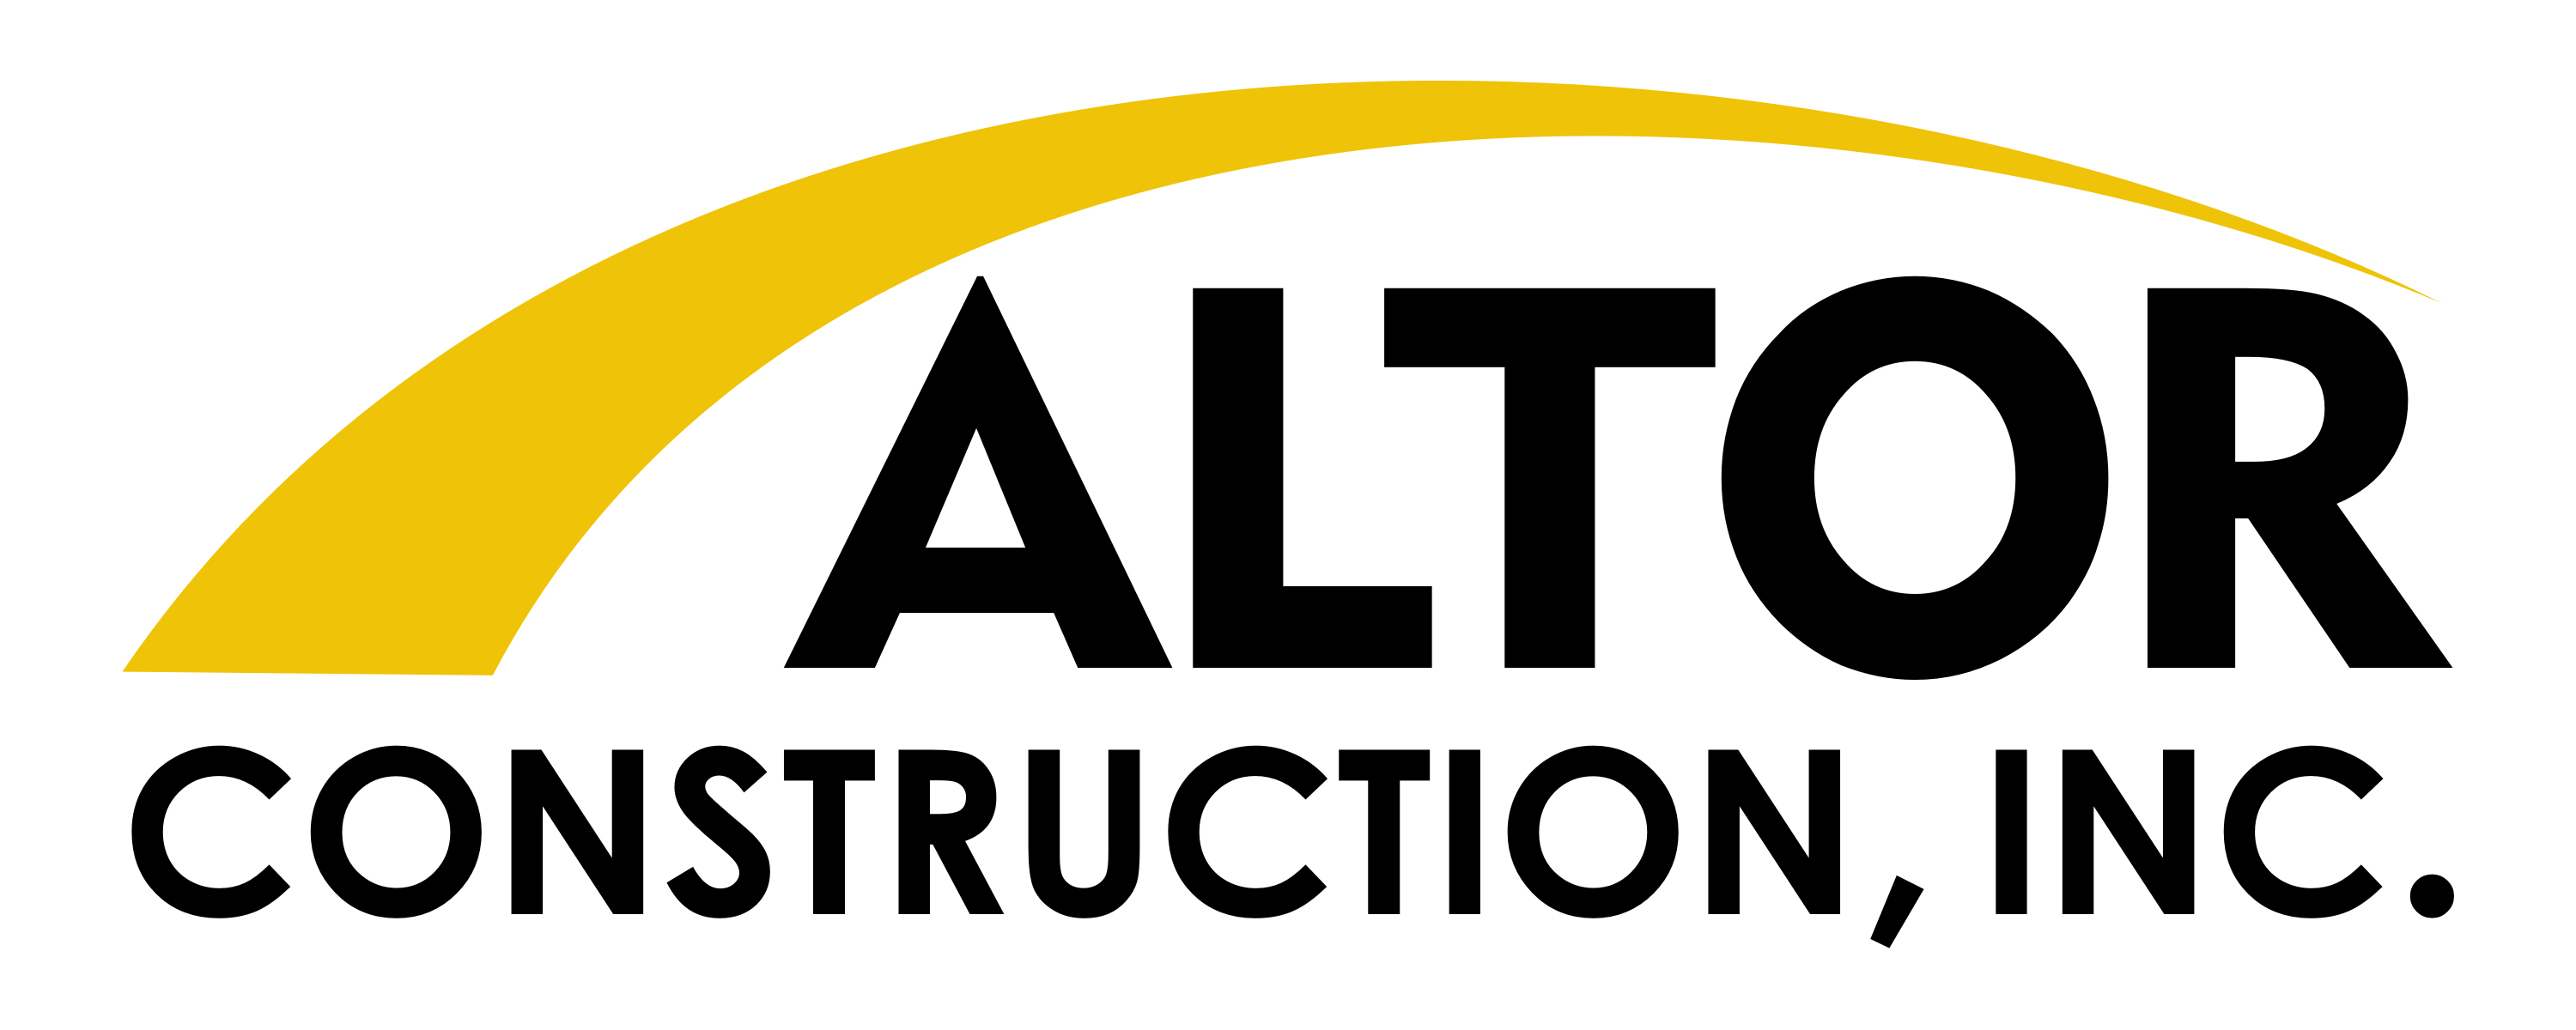 Altor_Construction_Logo_HIGH_RESOLUTION.jpg